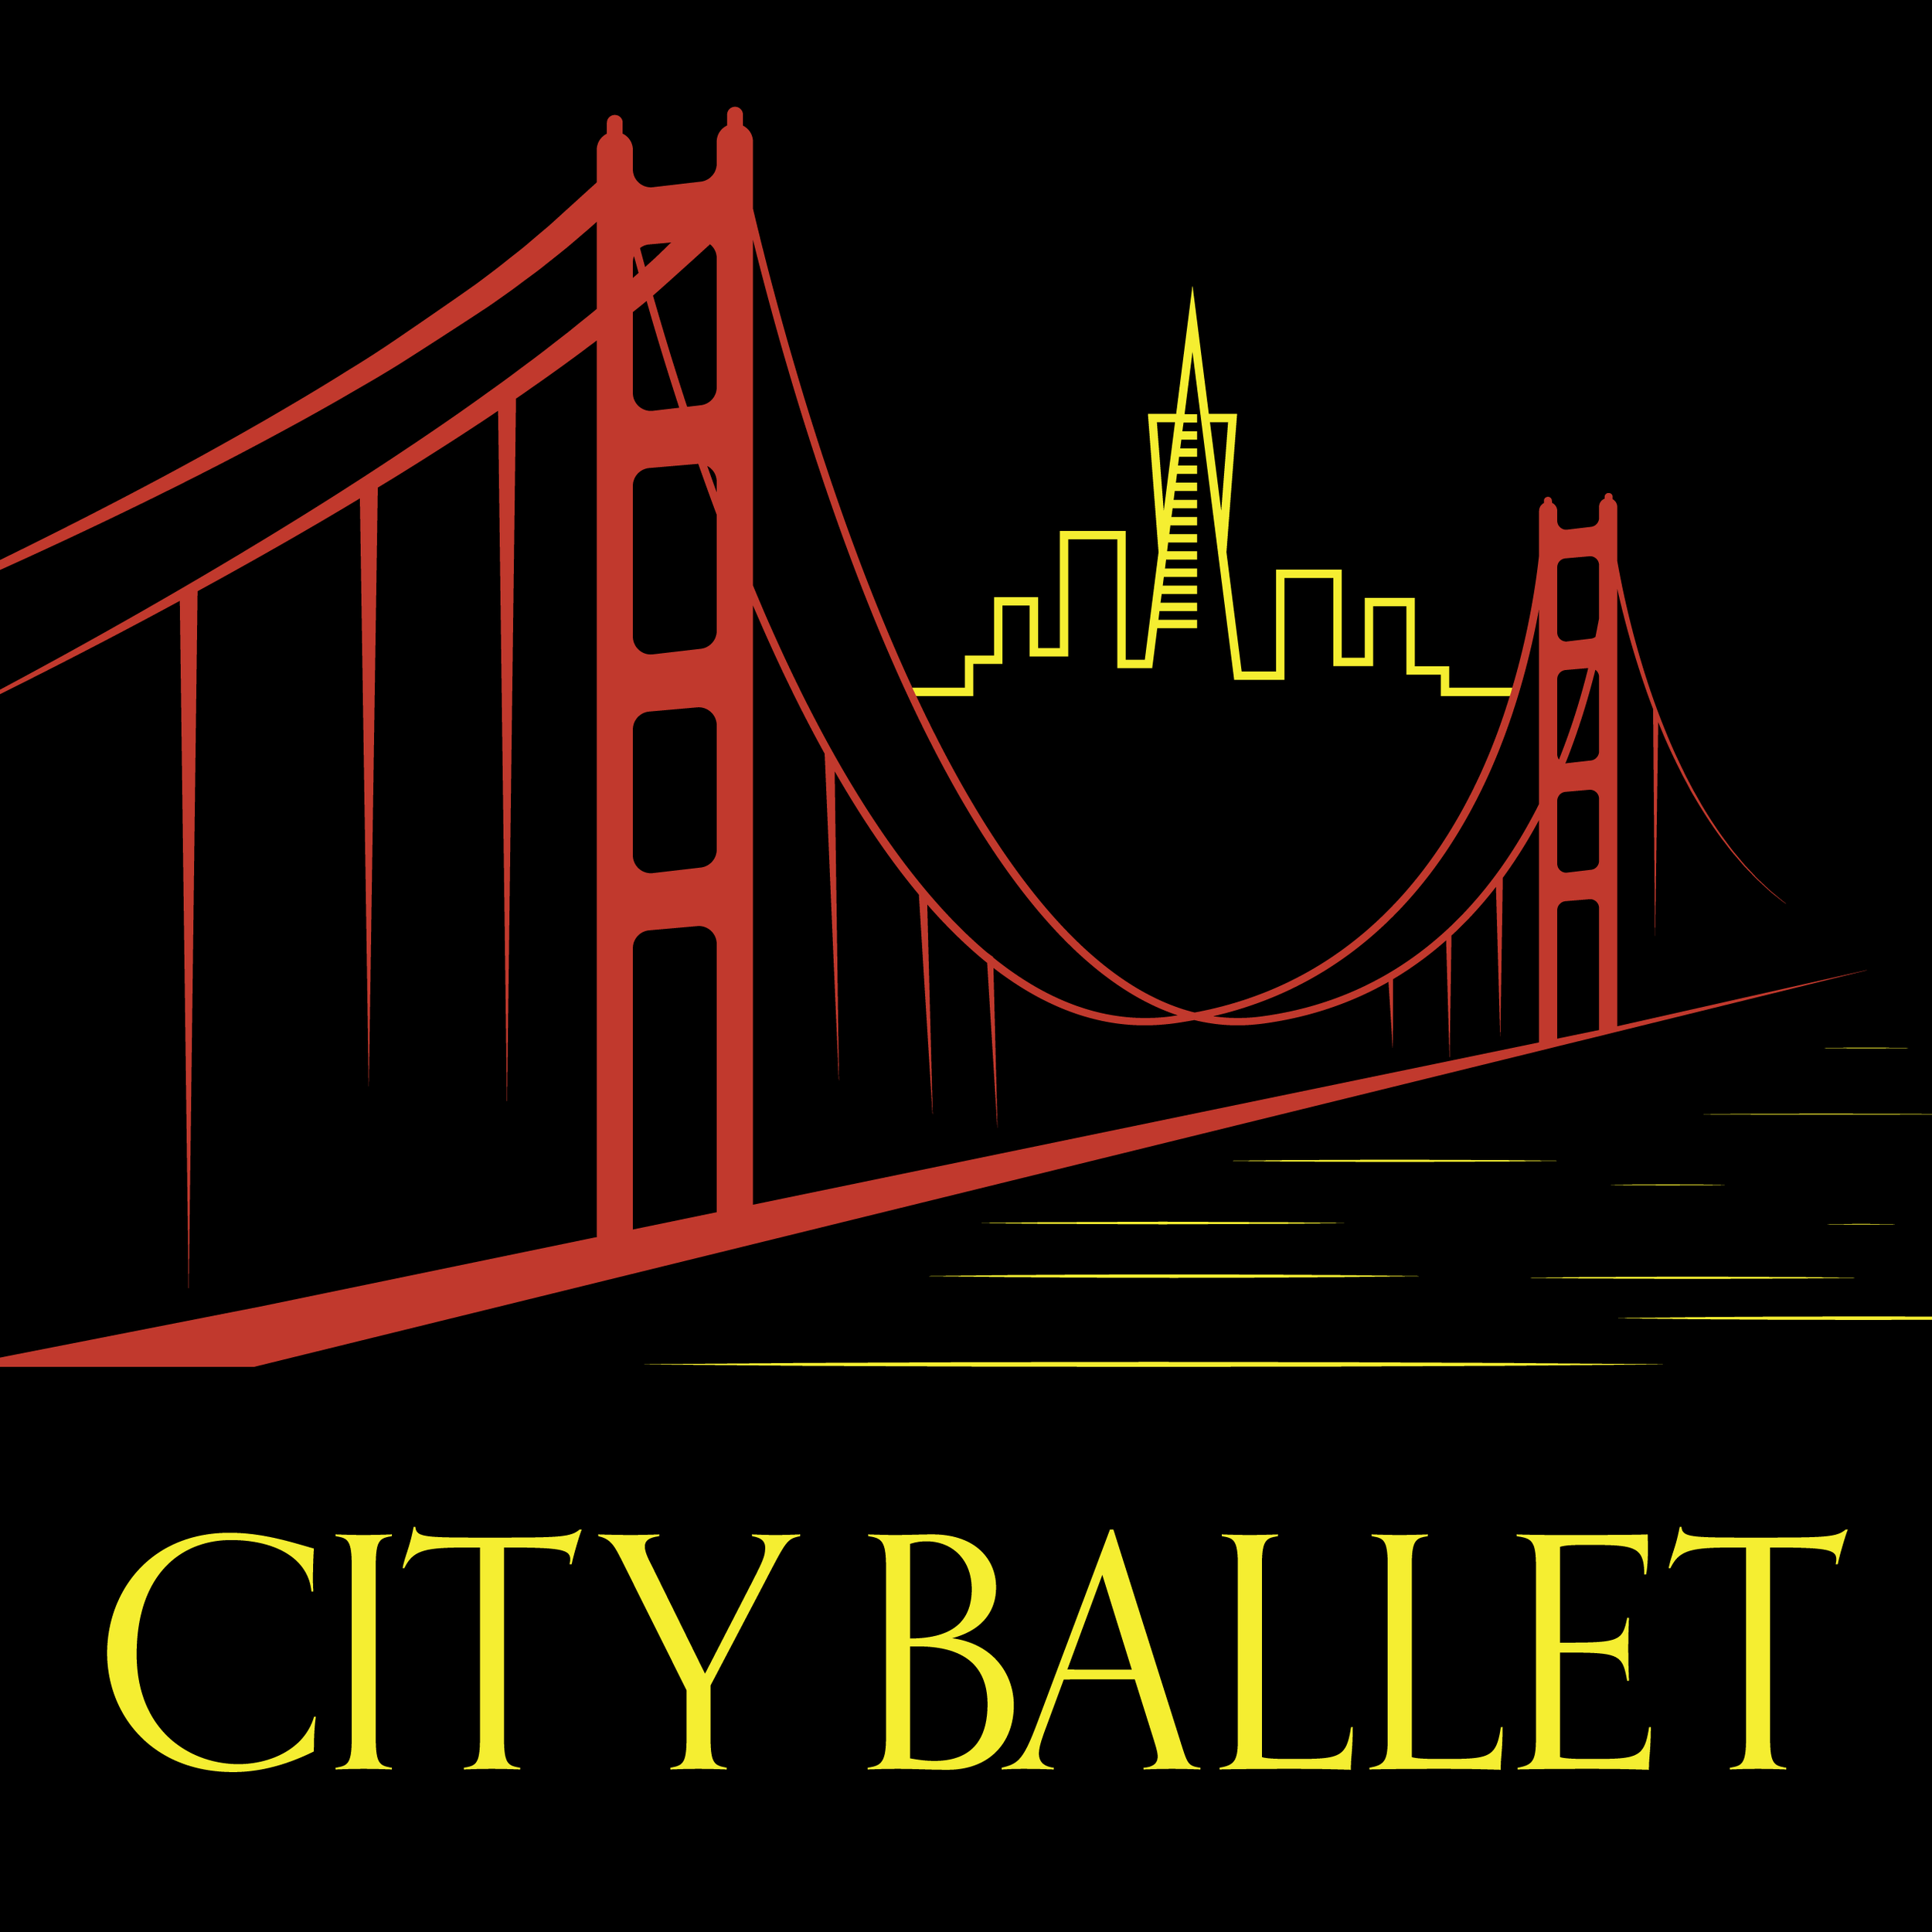 CityBalletLogoPrimary.png